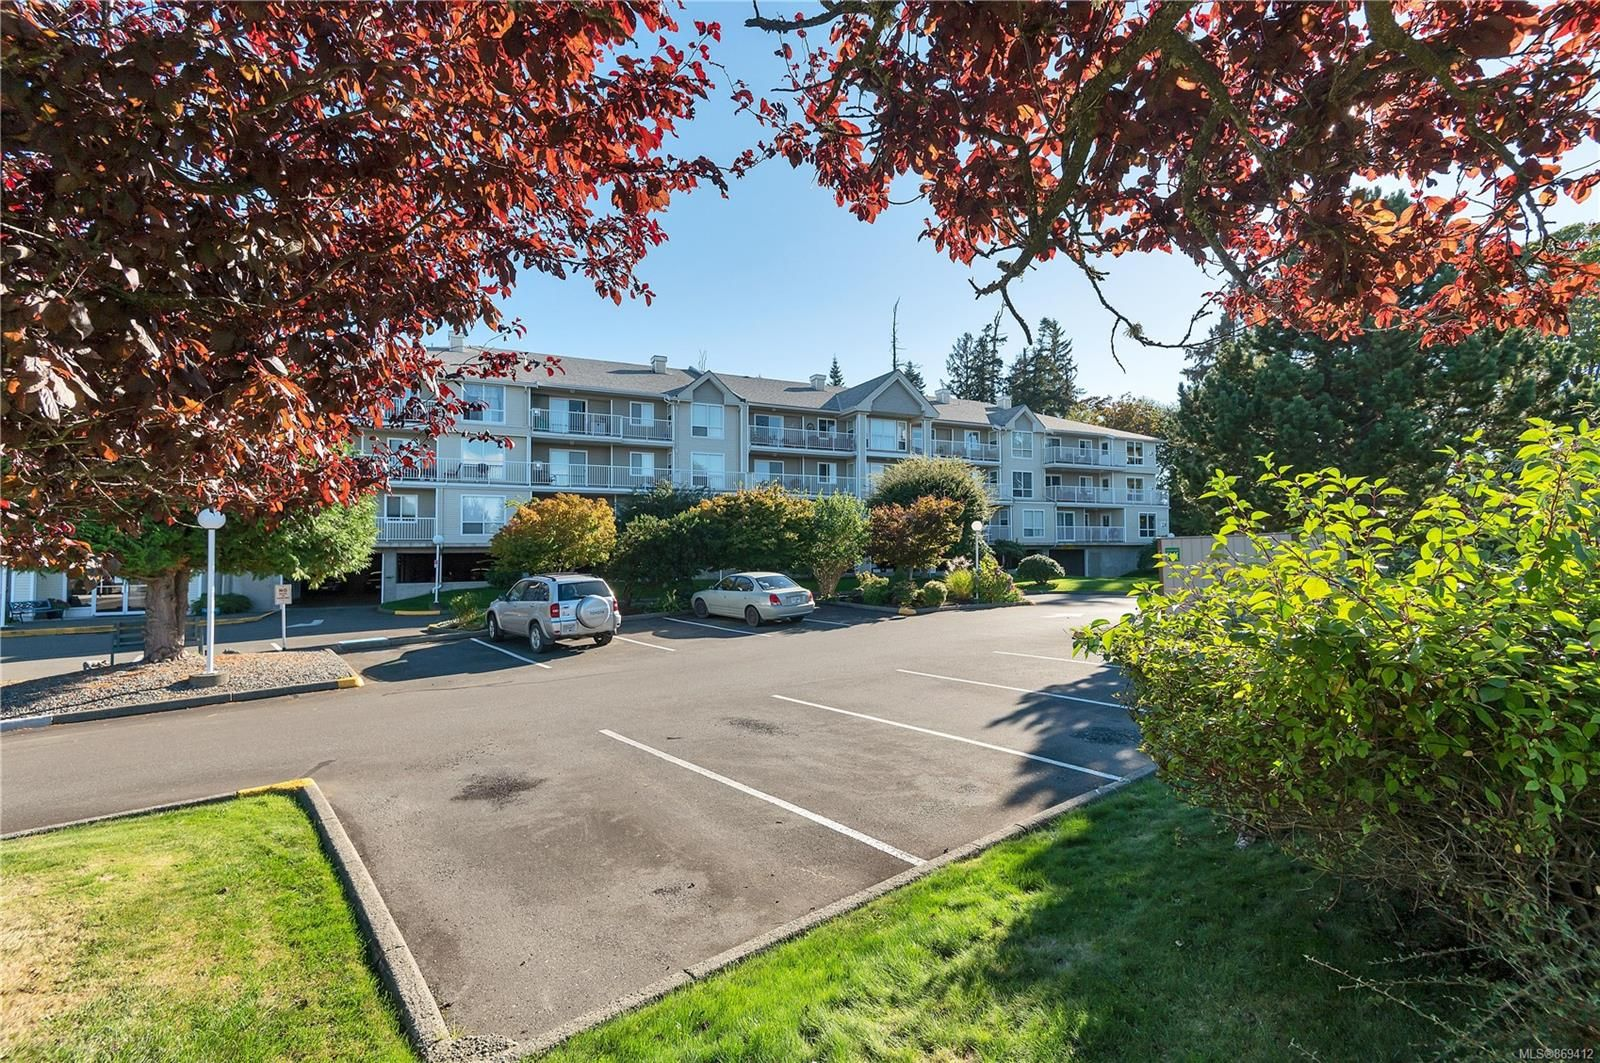 Main Photo: 109 155 Erickson Rd in : CR Campbell River South Condo for sale (Campbell River)  : MLS®# 869412